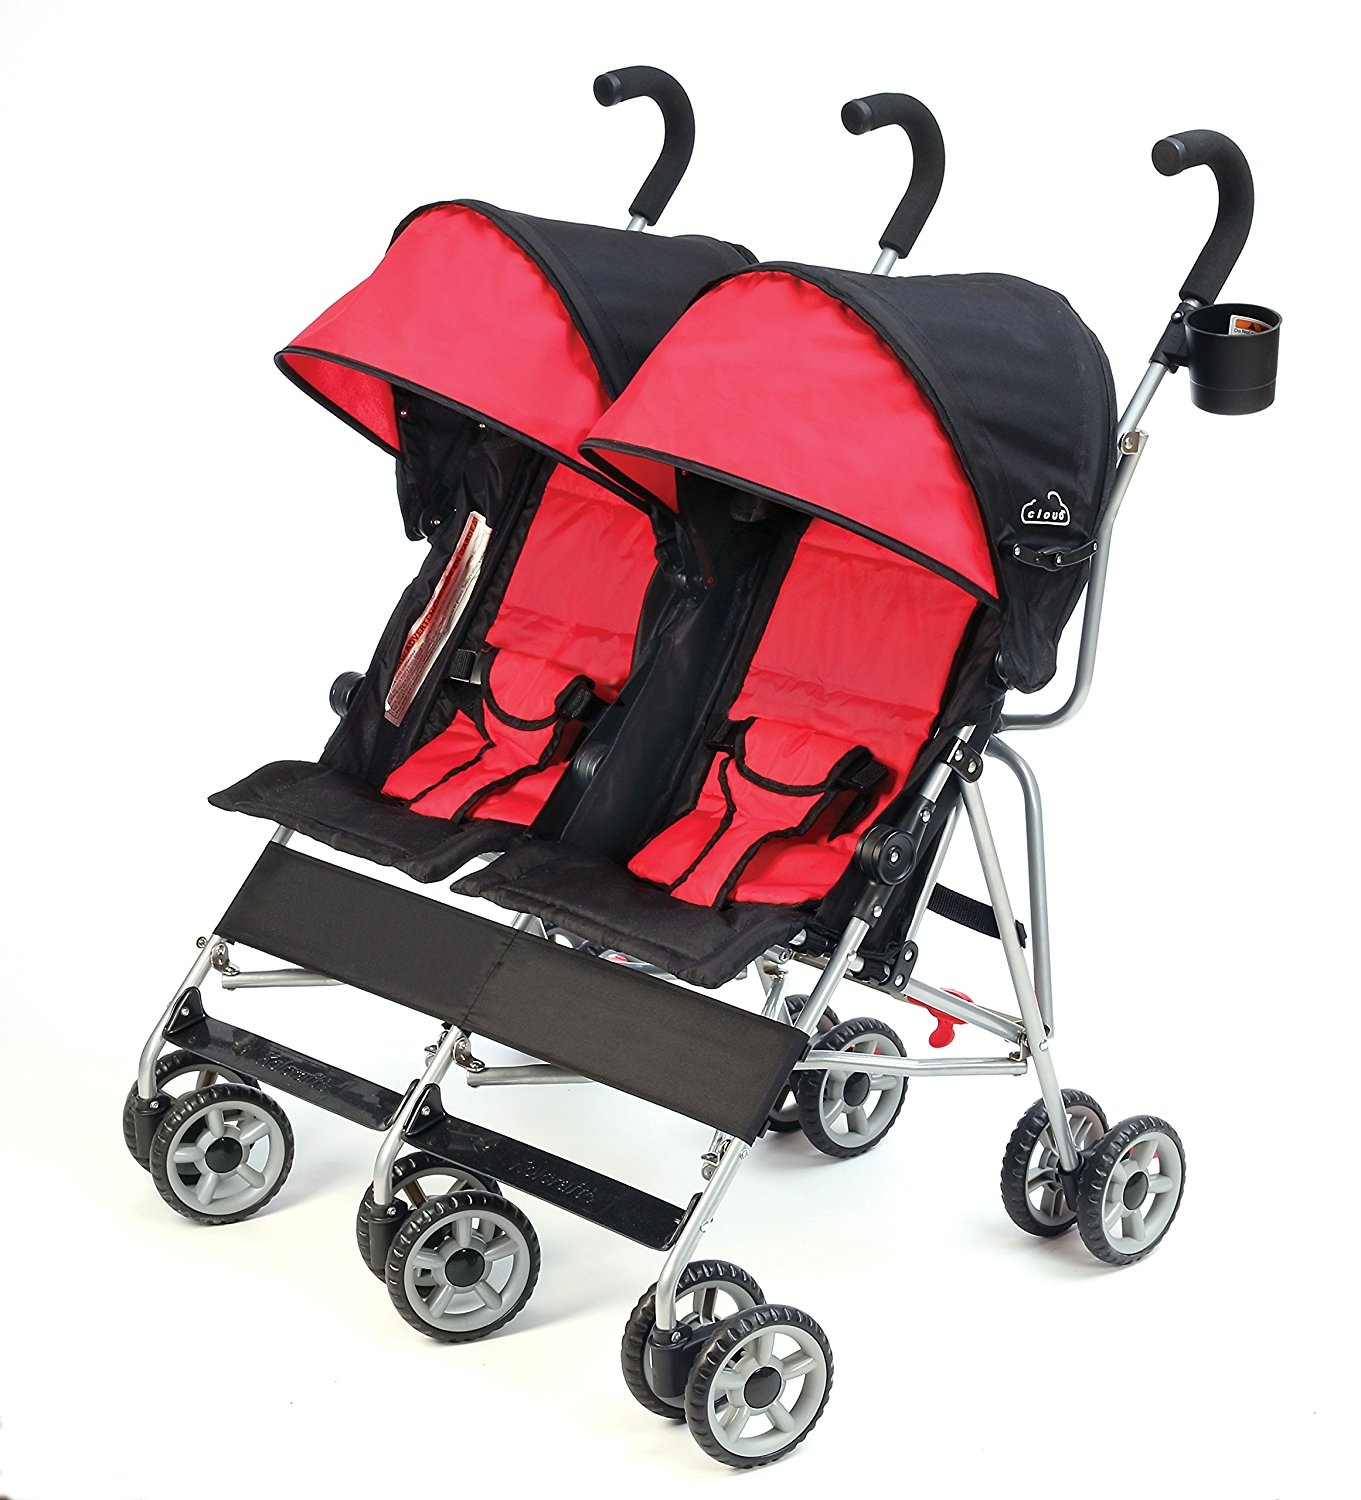 Kolcraft Cloud Side-by-Side Double Umbrella Stroller with 3-Point Safety System and Reclining Seats, Scarlet by Quality Brand